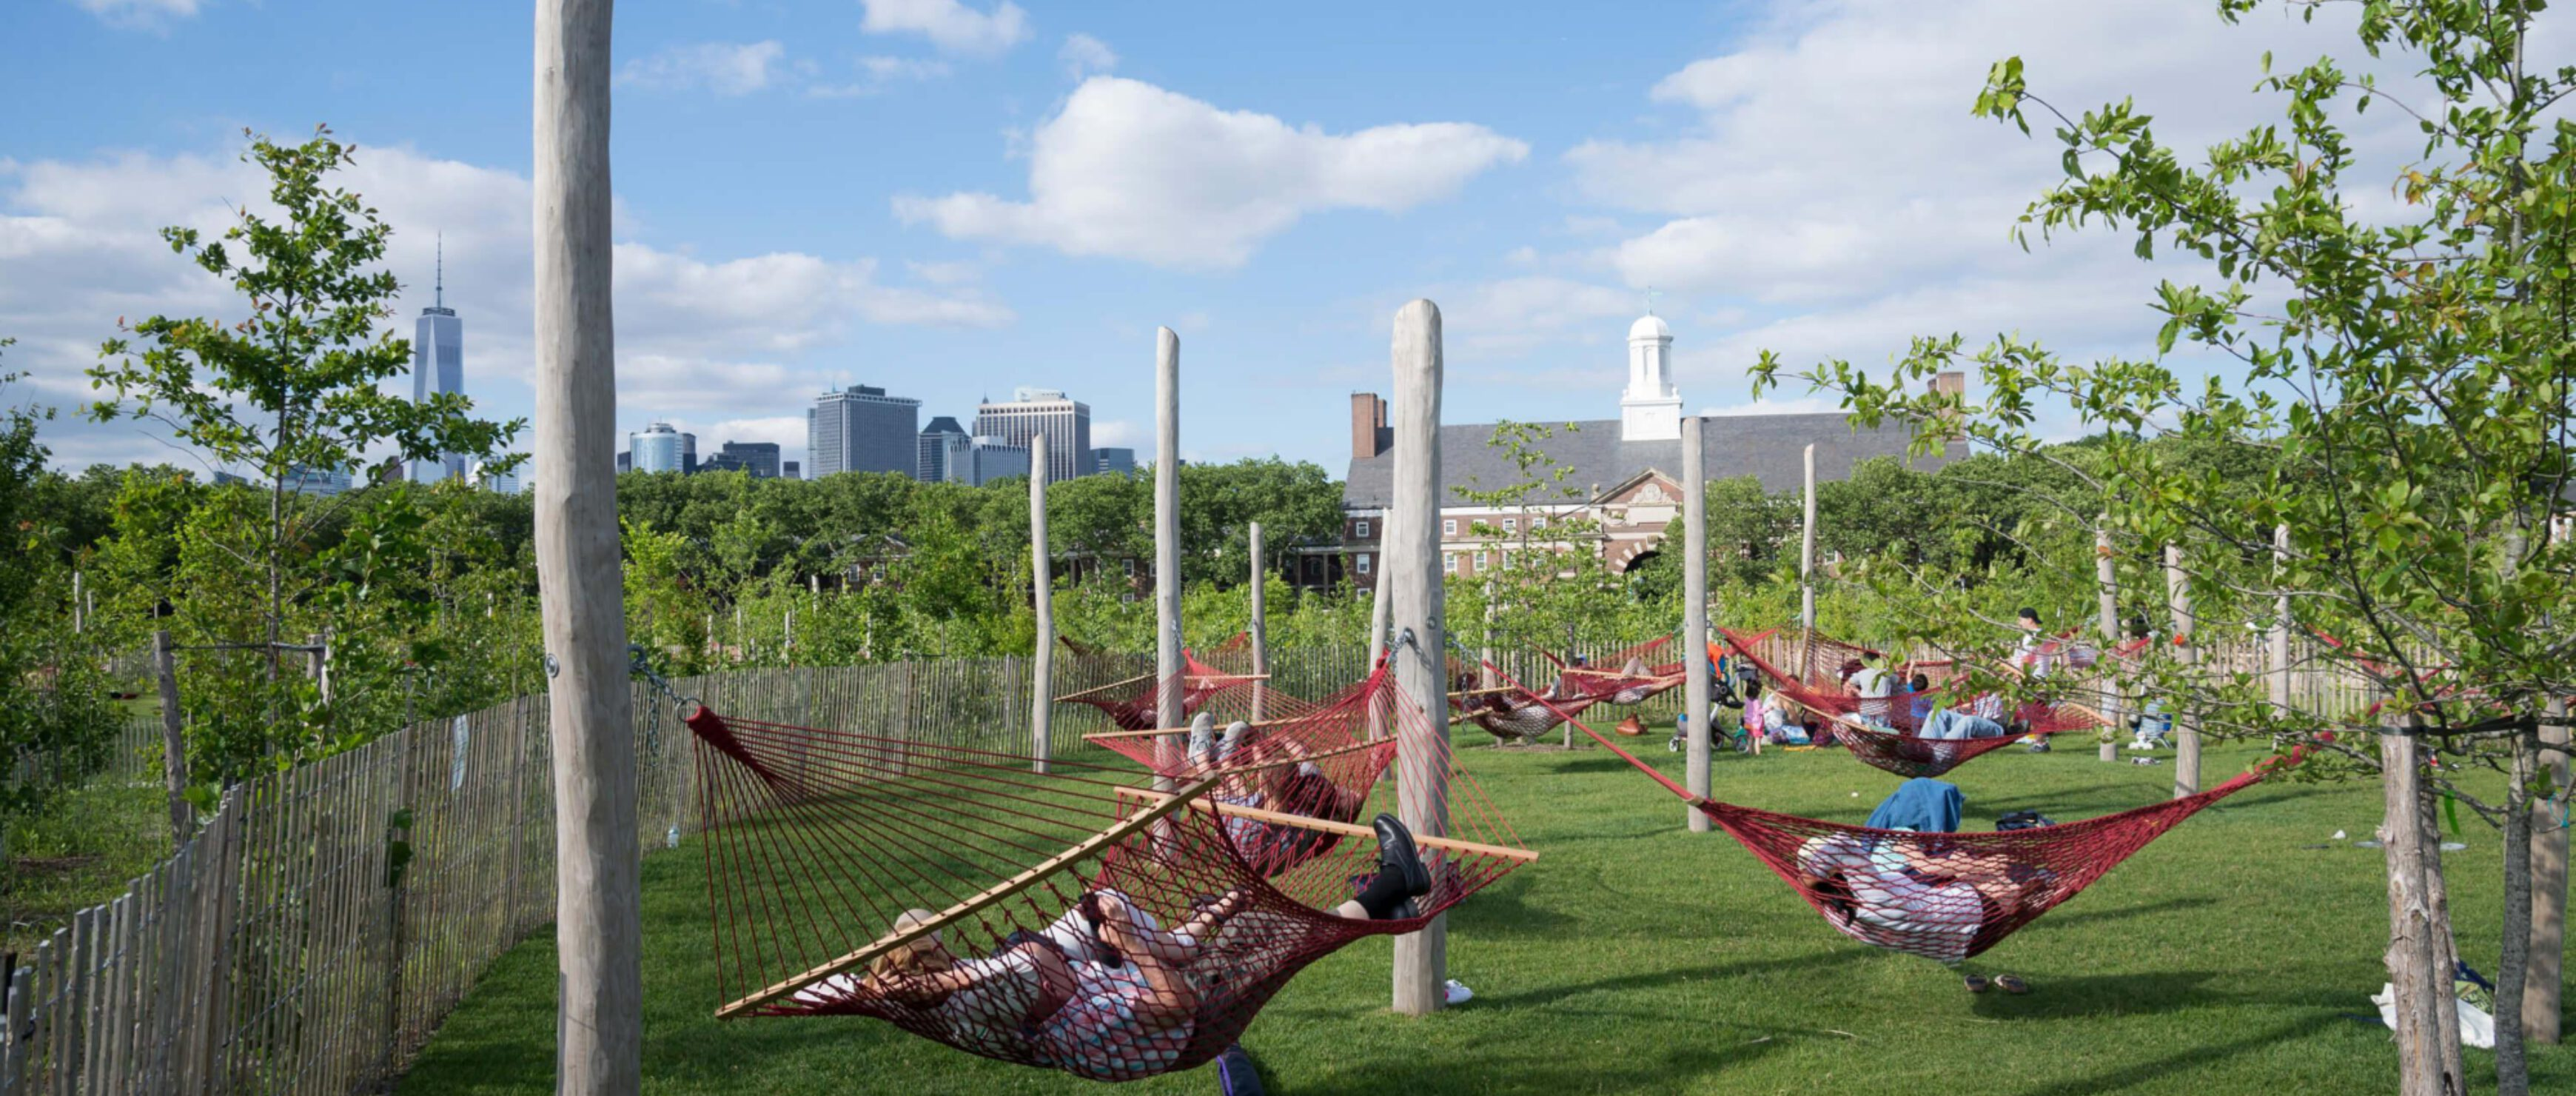 Governors Island National Park